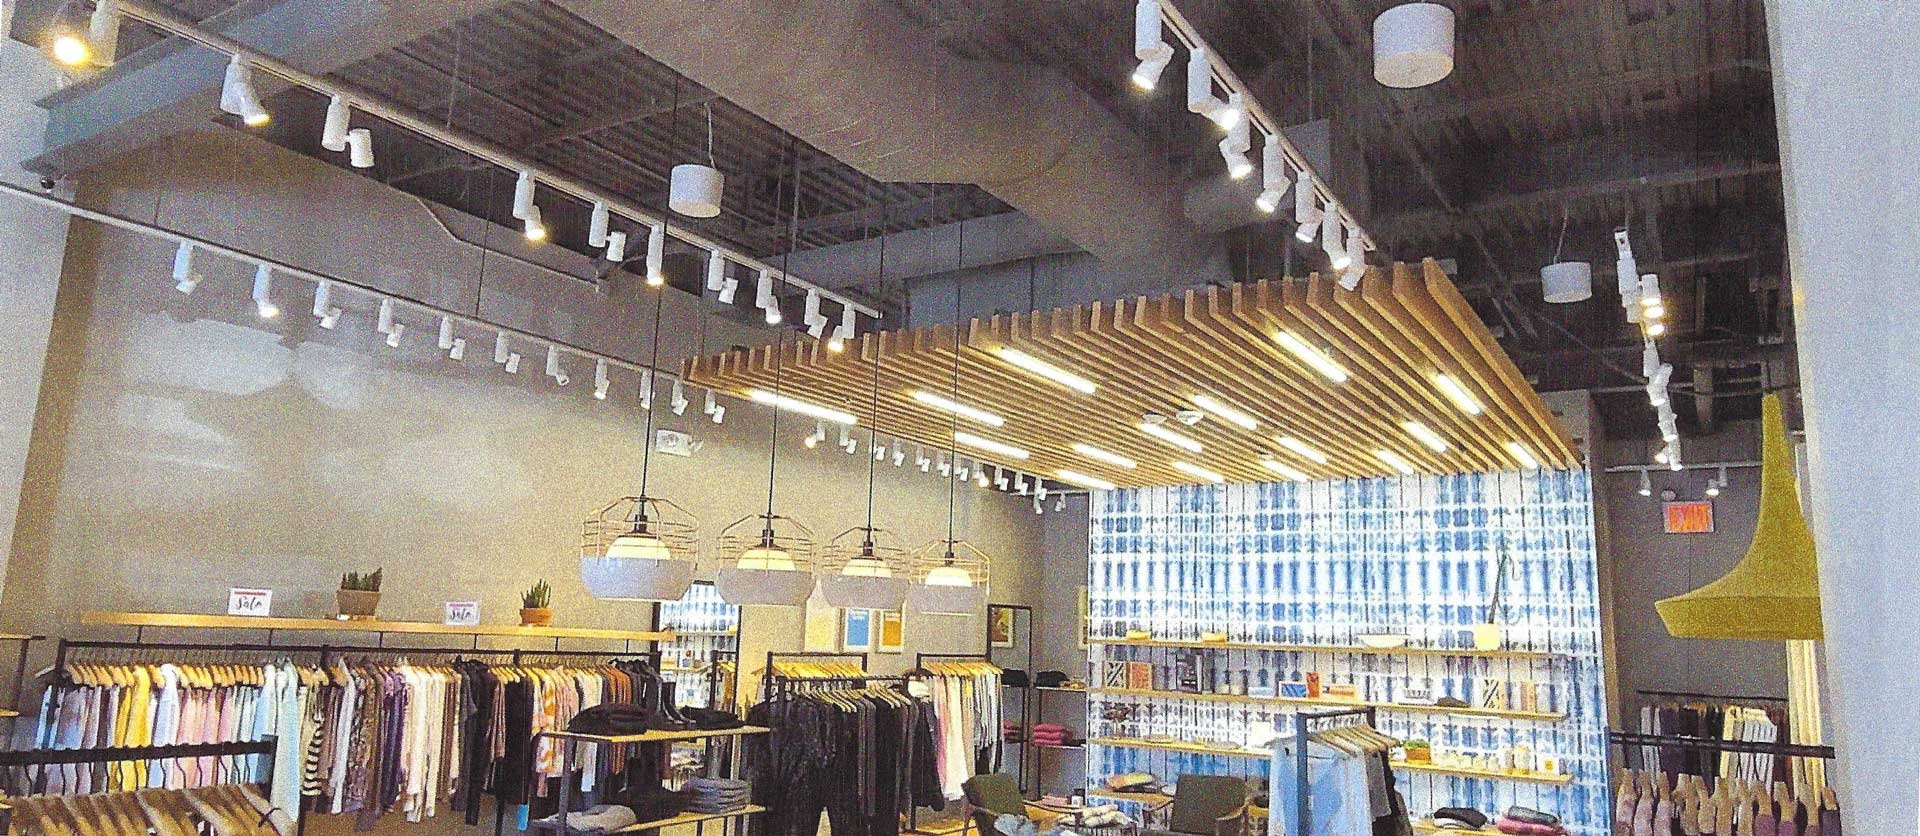 Commercial Electric Work at a Retail Store in Roslyn NY 11576